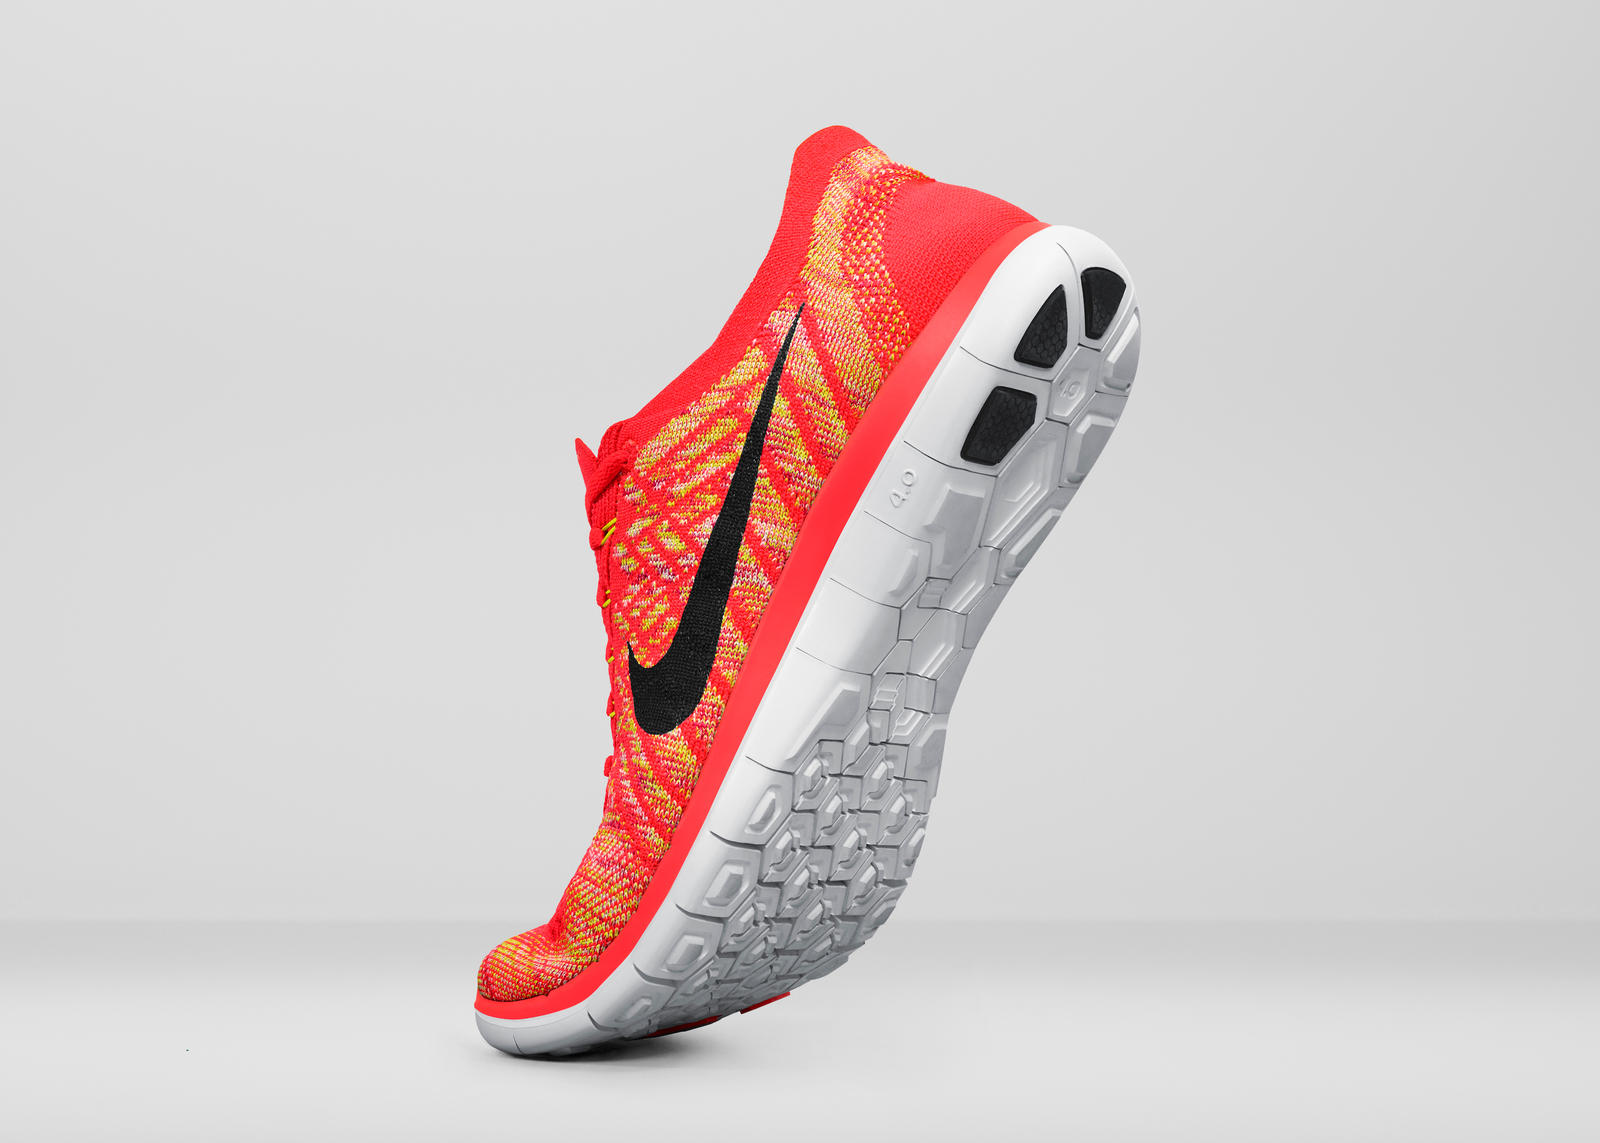 2015 Nike Free Collection: Five Reasons Less is More Nike News